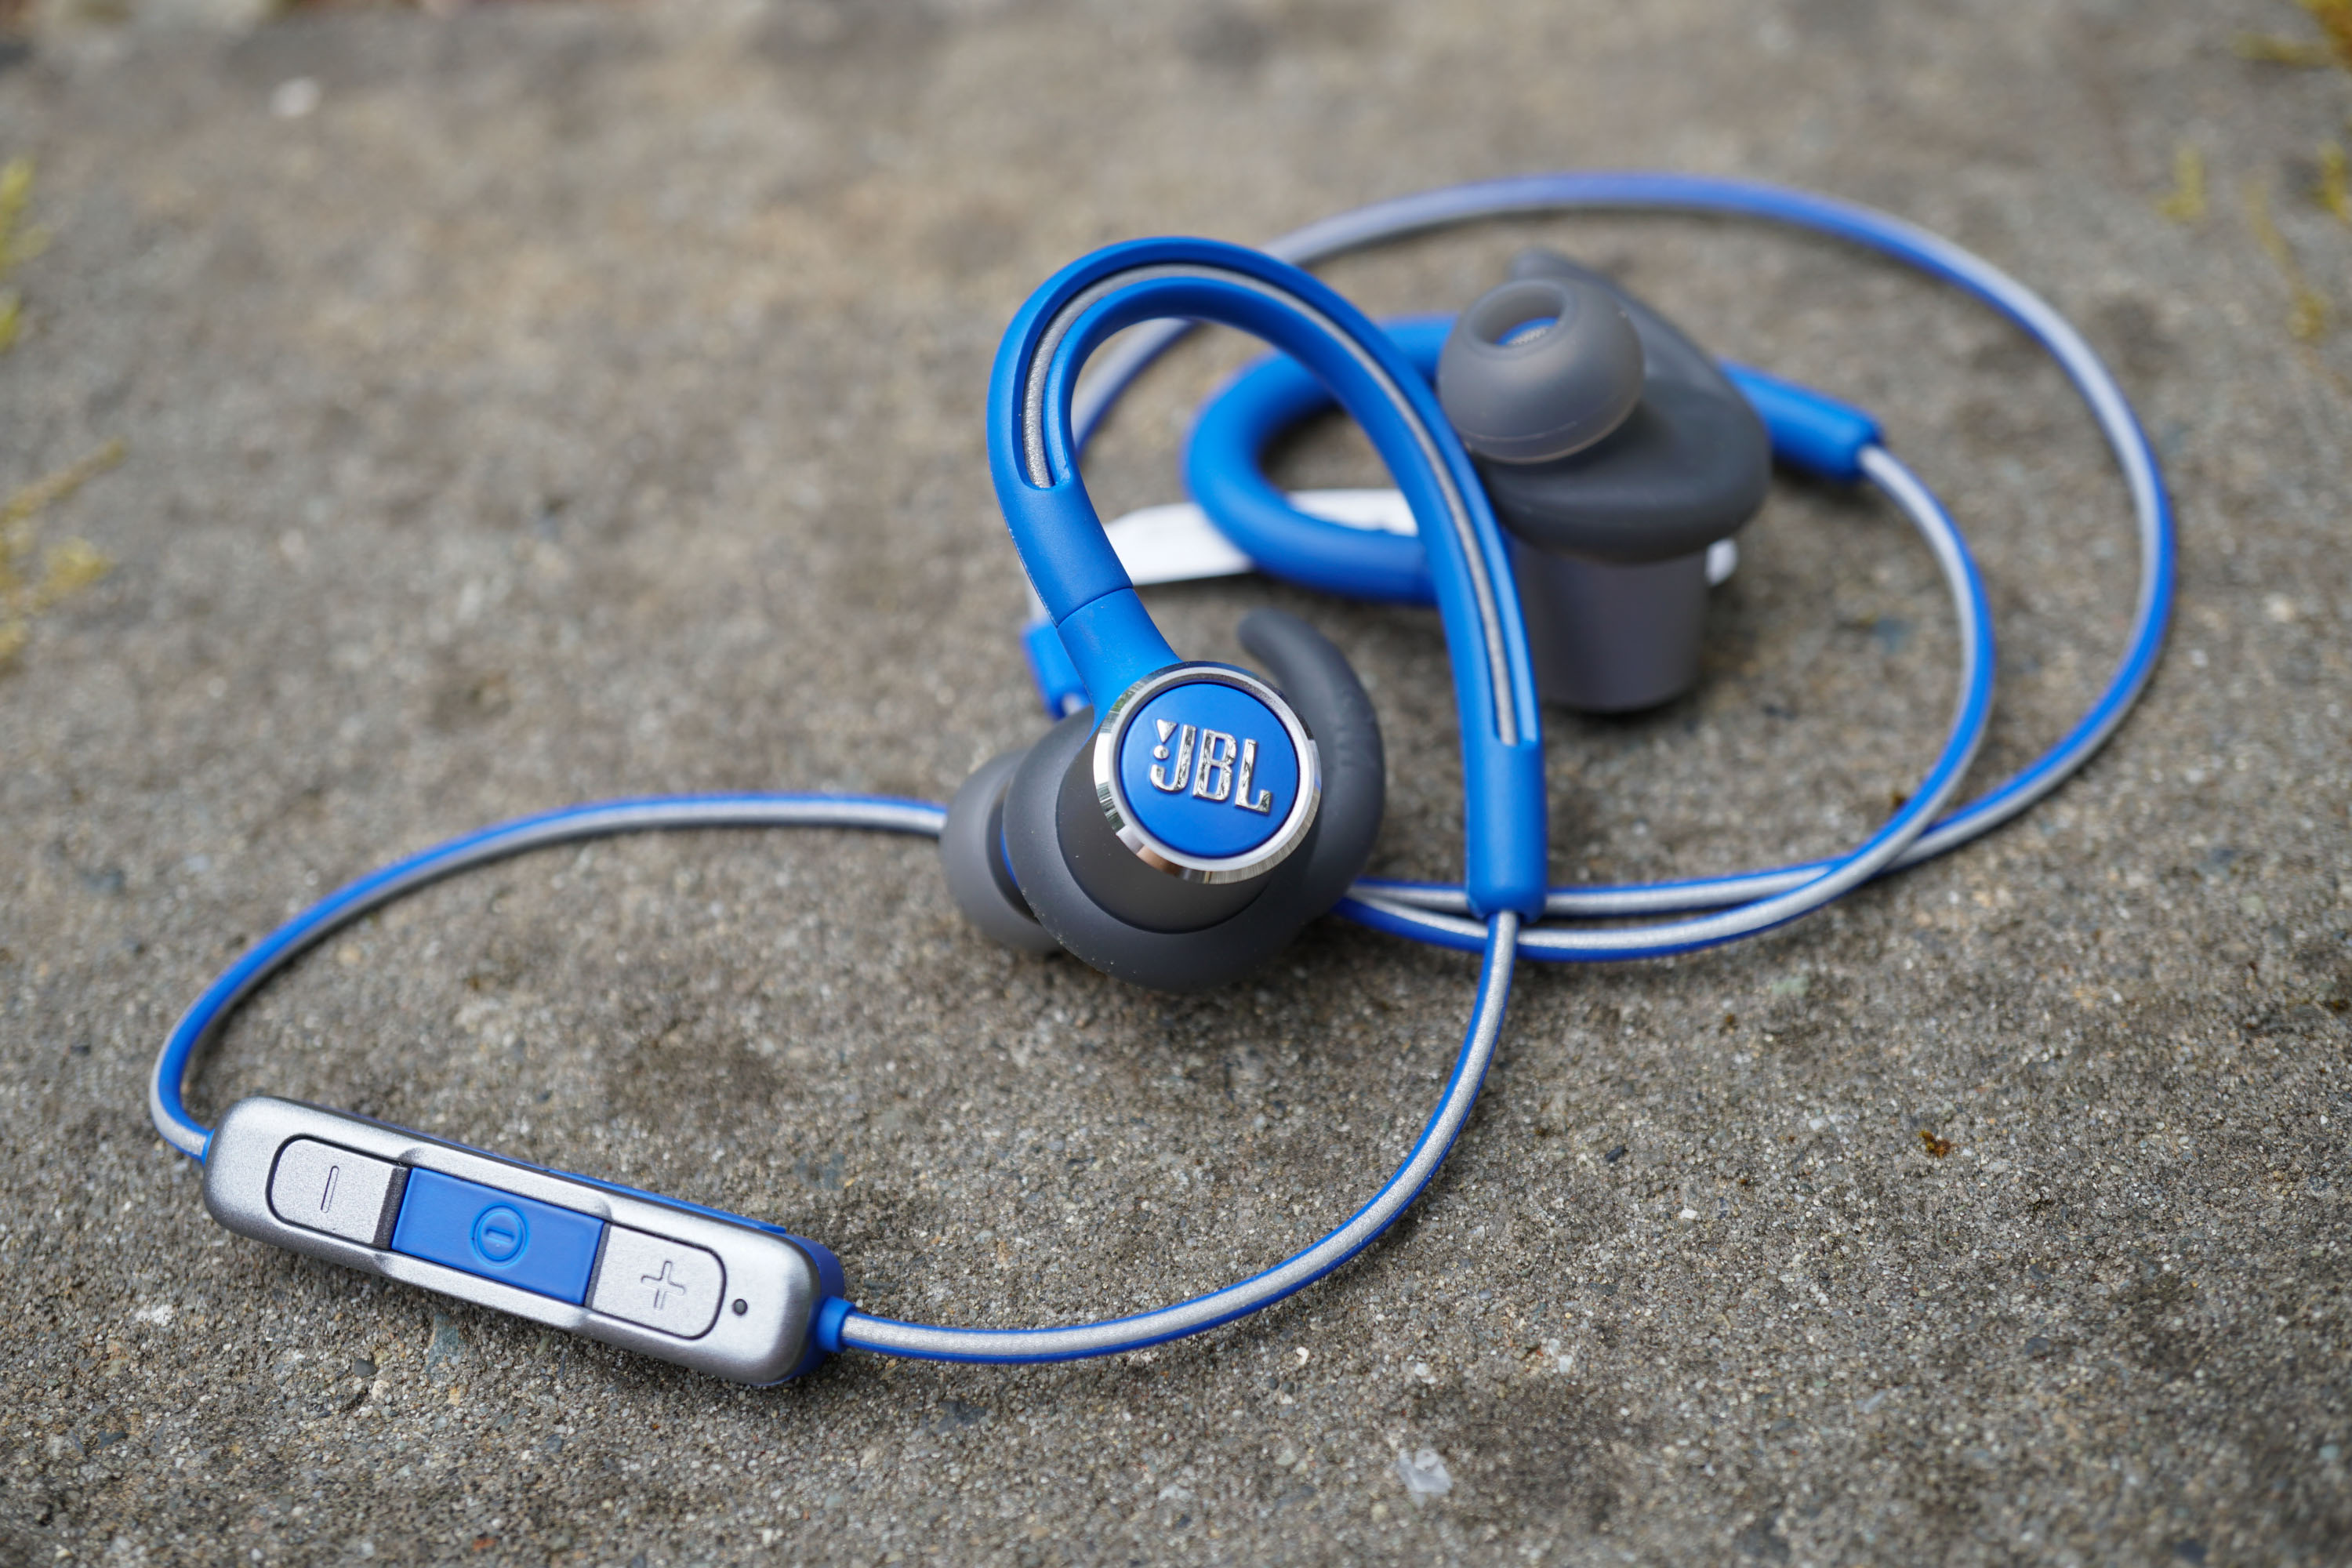 Jbl Reflect Contour 2 Wireless Sport Earbuds Review Step Up Your Sound Quality Headset Two Output Headphones